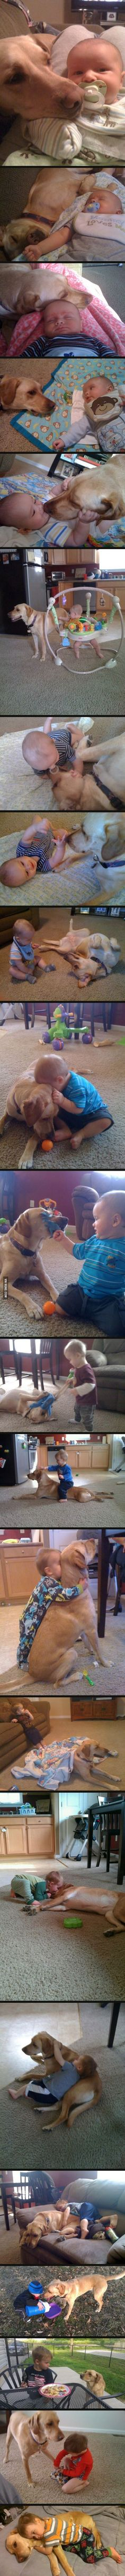 Best friends for 2 1/2 years. My heart just melted into a puddle.